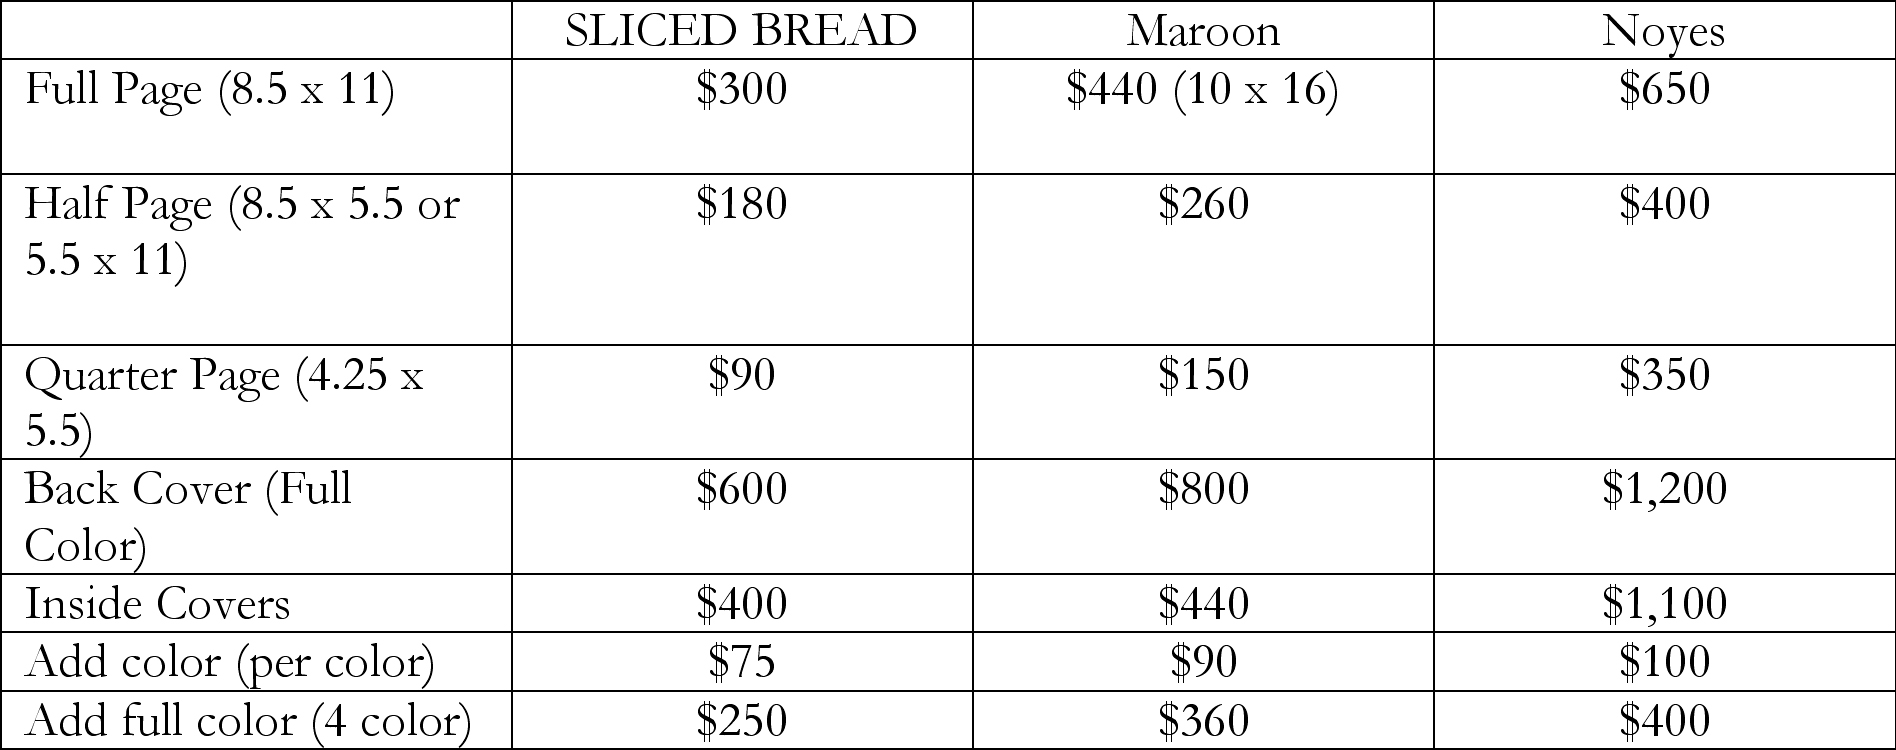 We are also willing to negotiate - just contact us at editors@slicedbreadmag.com